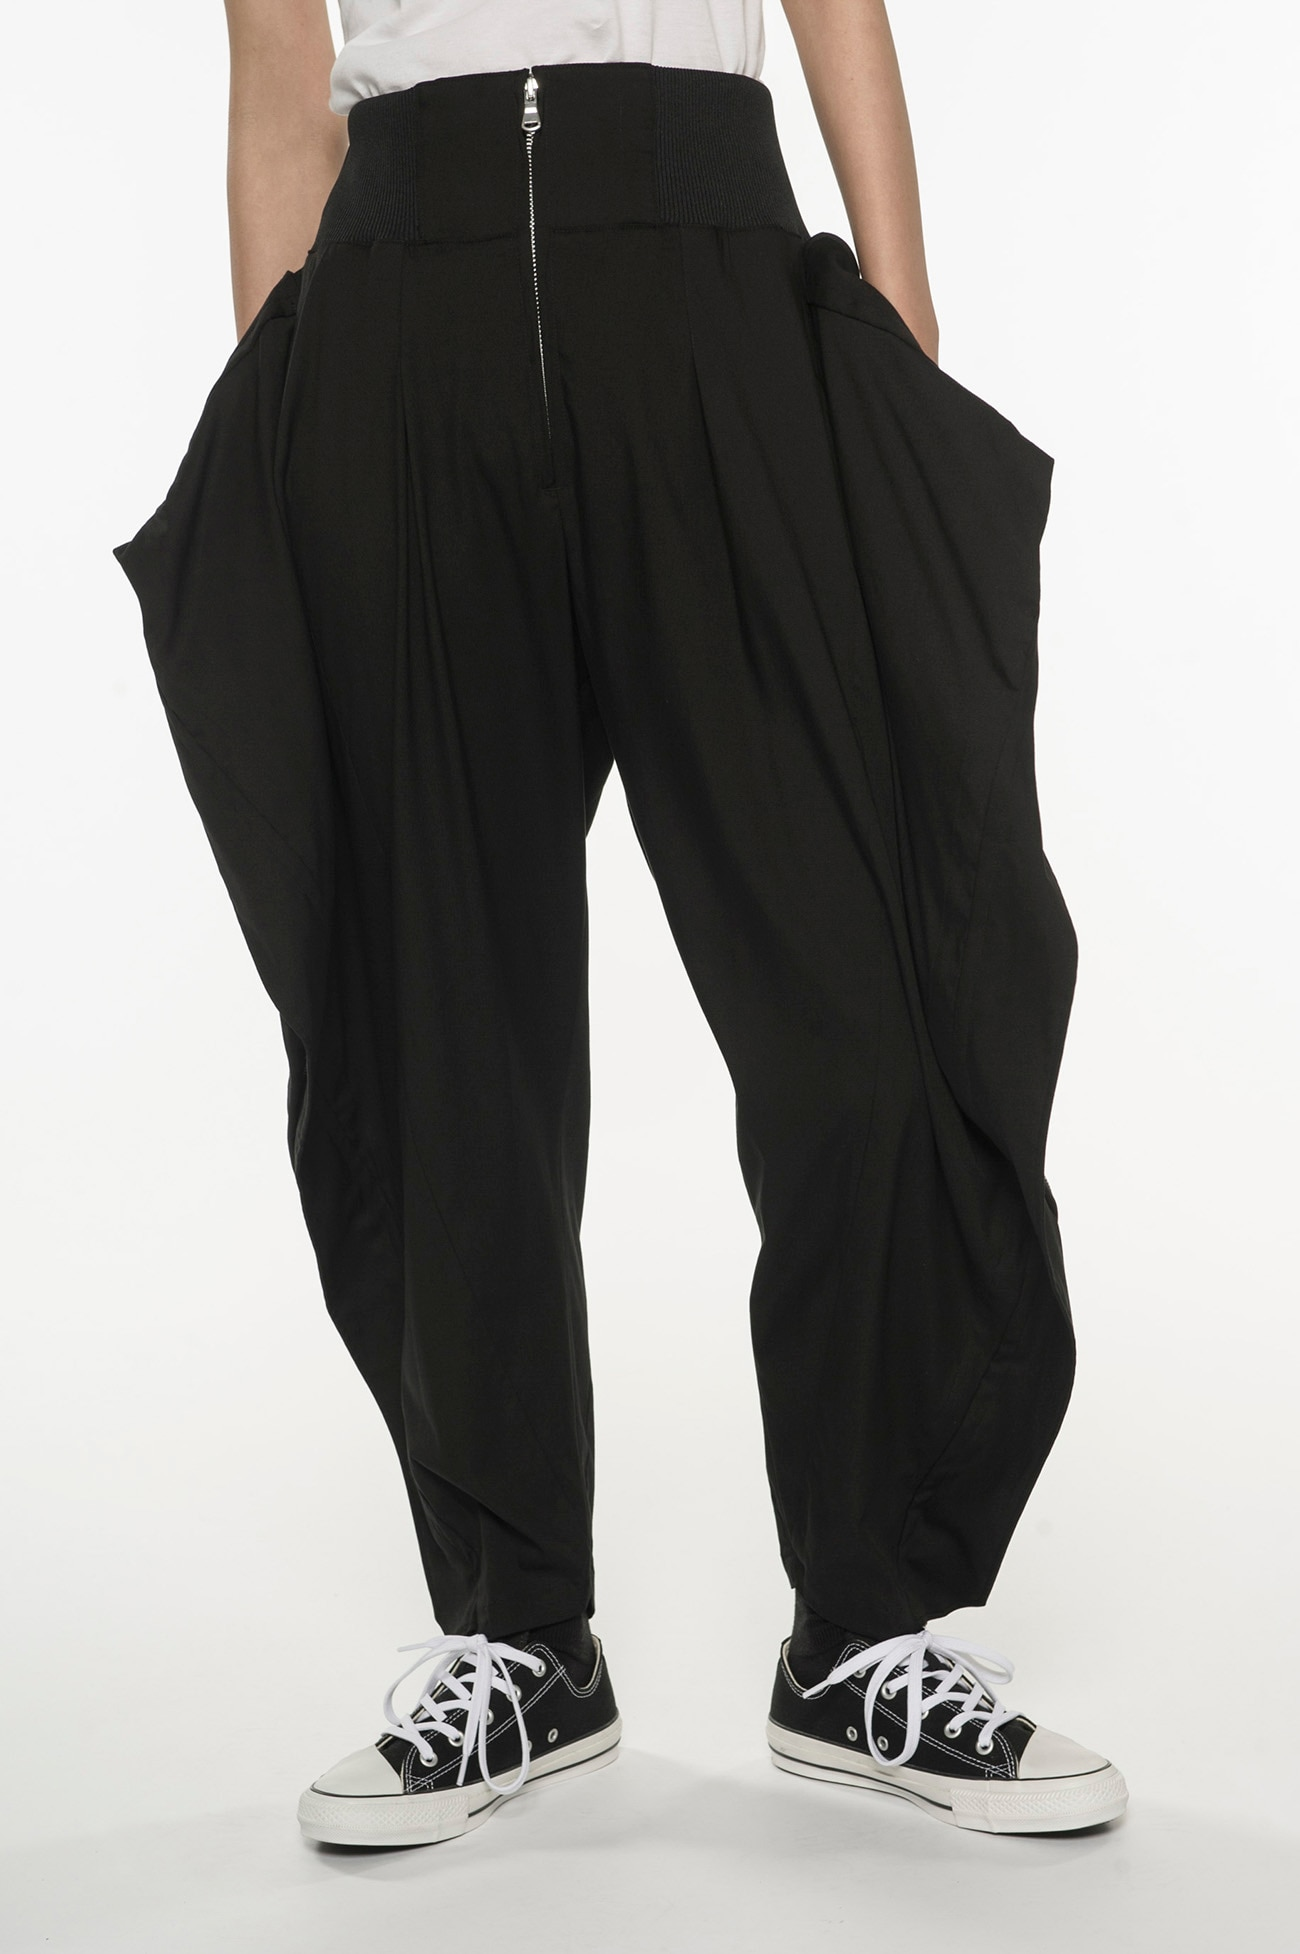 stretch Twill Square ZIP pants